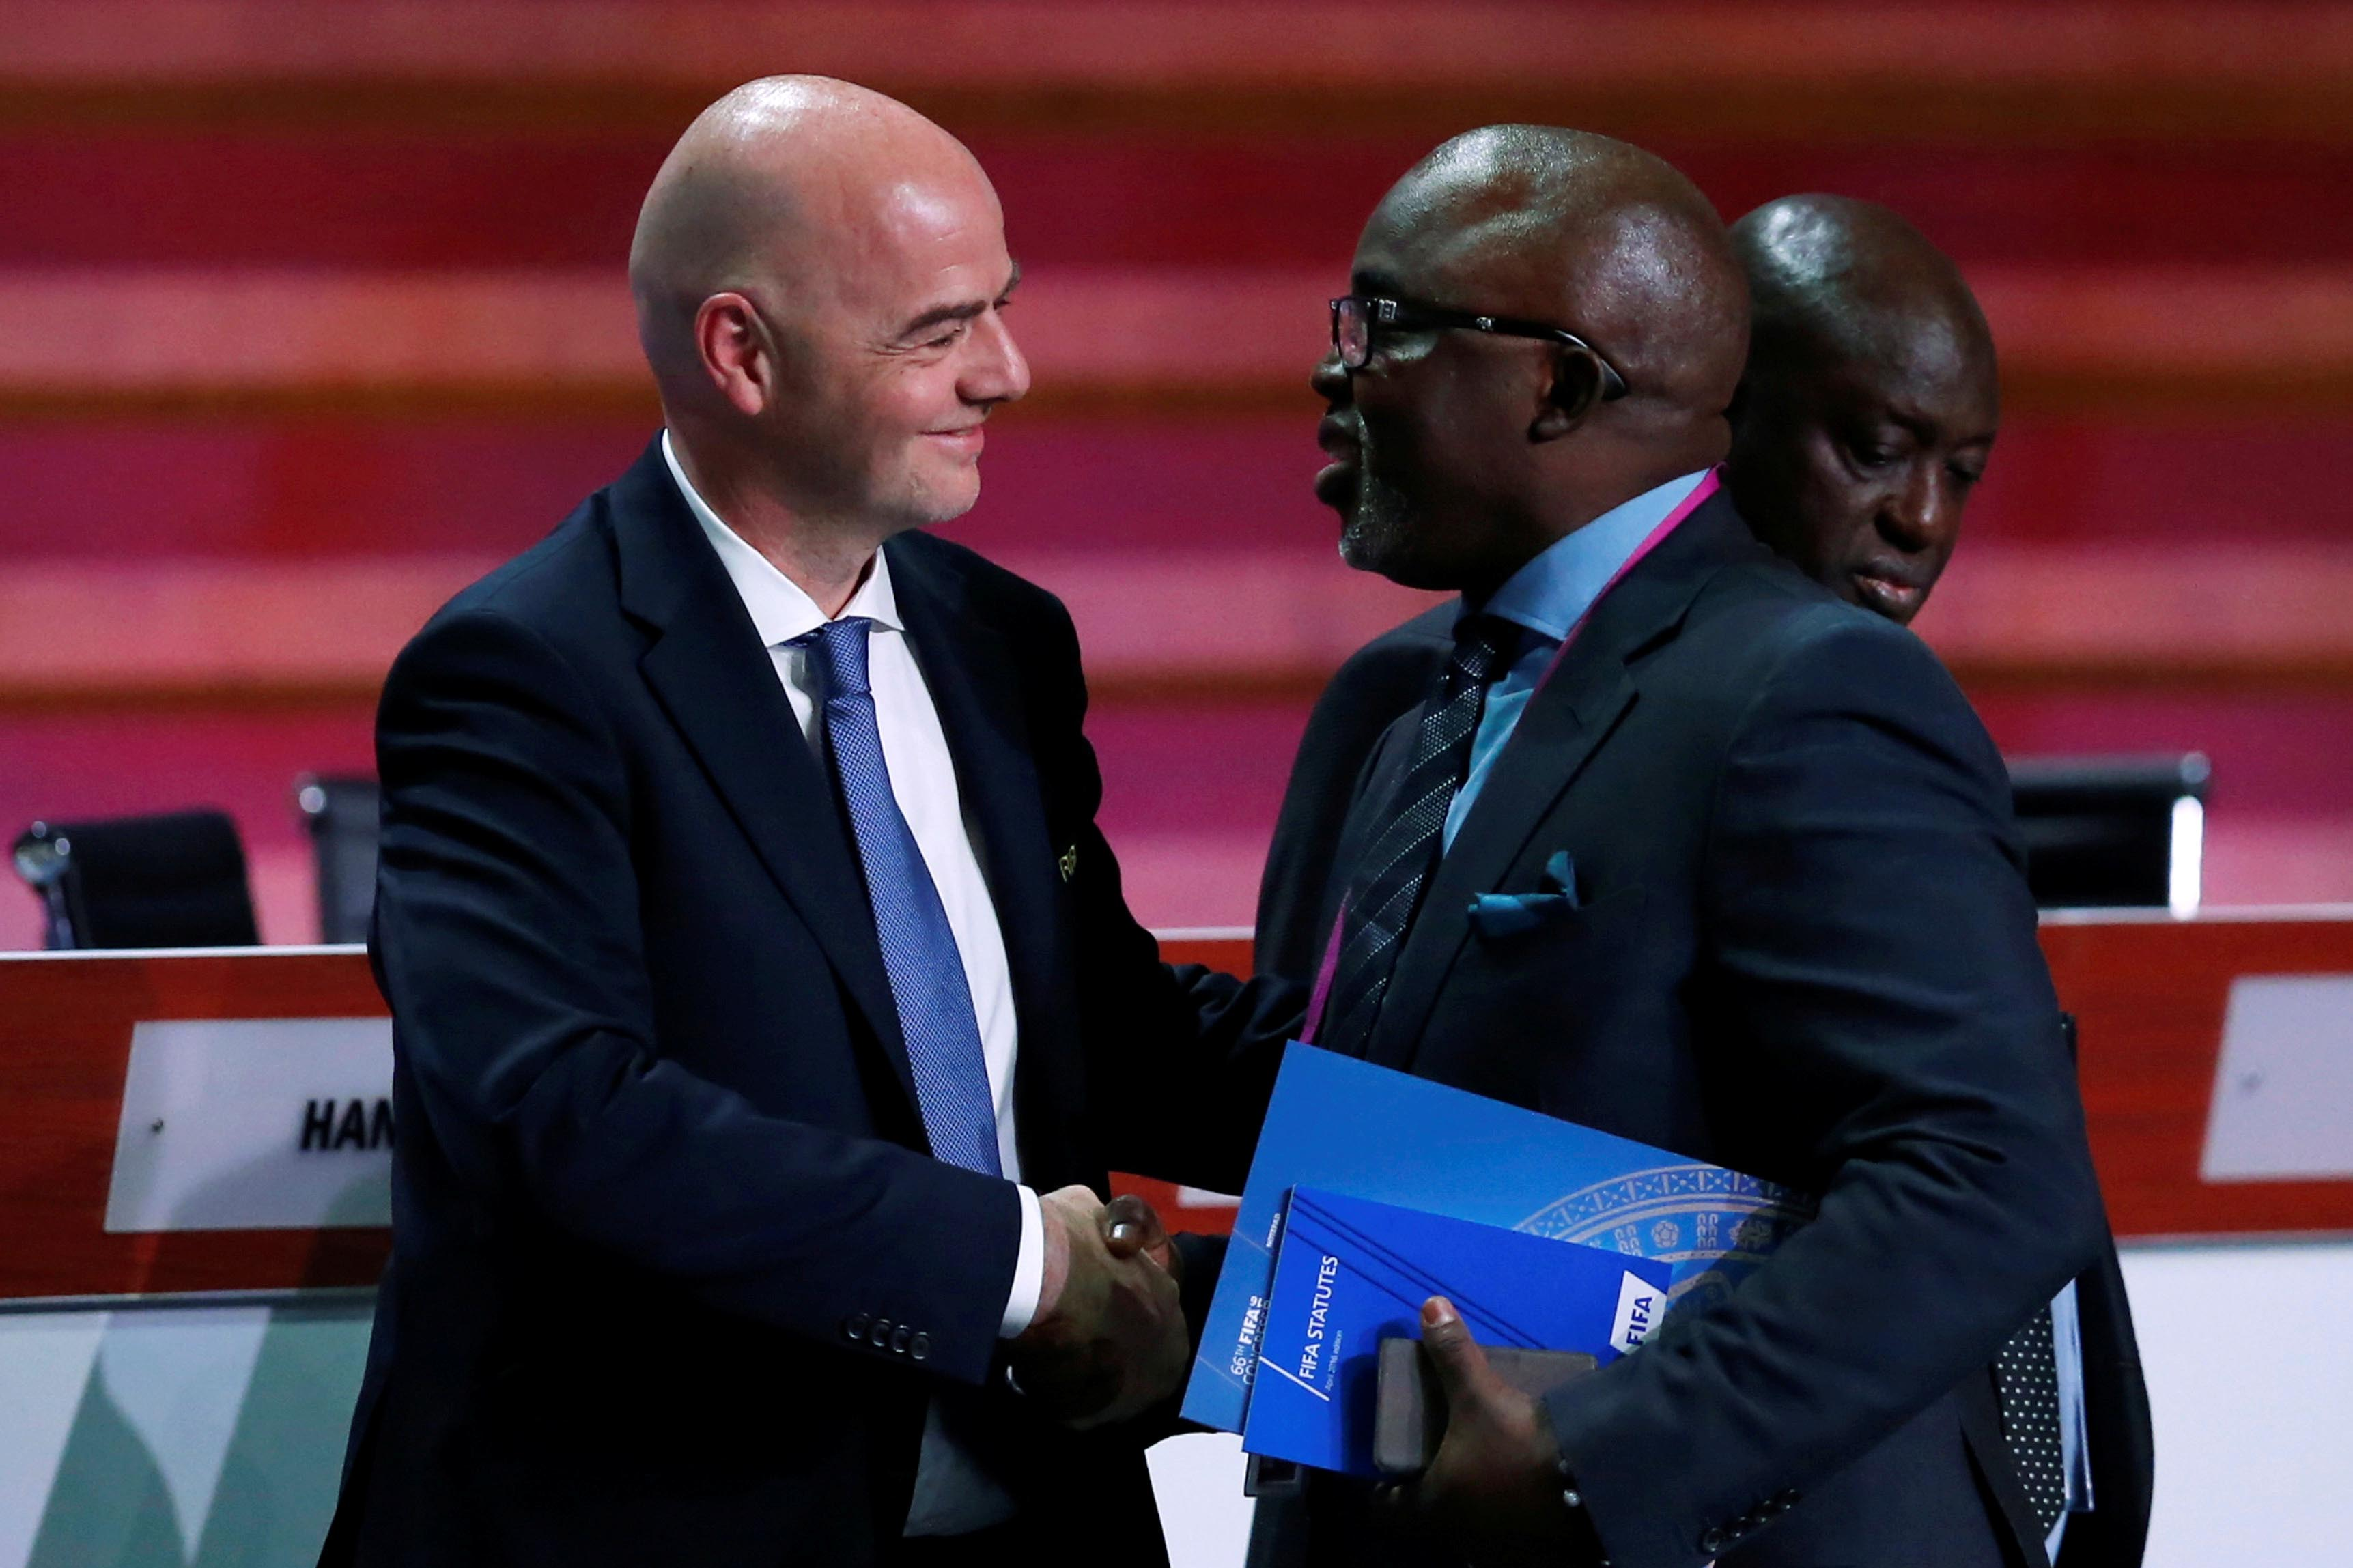 13 May 2016: Fifa president Gianni Infantino and Nigeria Football Federation president Amaju Pinnick at the 66th Fifa Congress in Mexico City, Mexico. (Photograph by Reuters/Edgard Garrido)